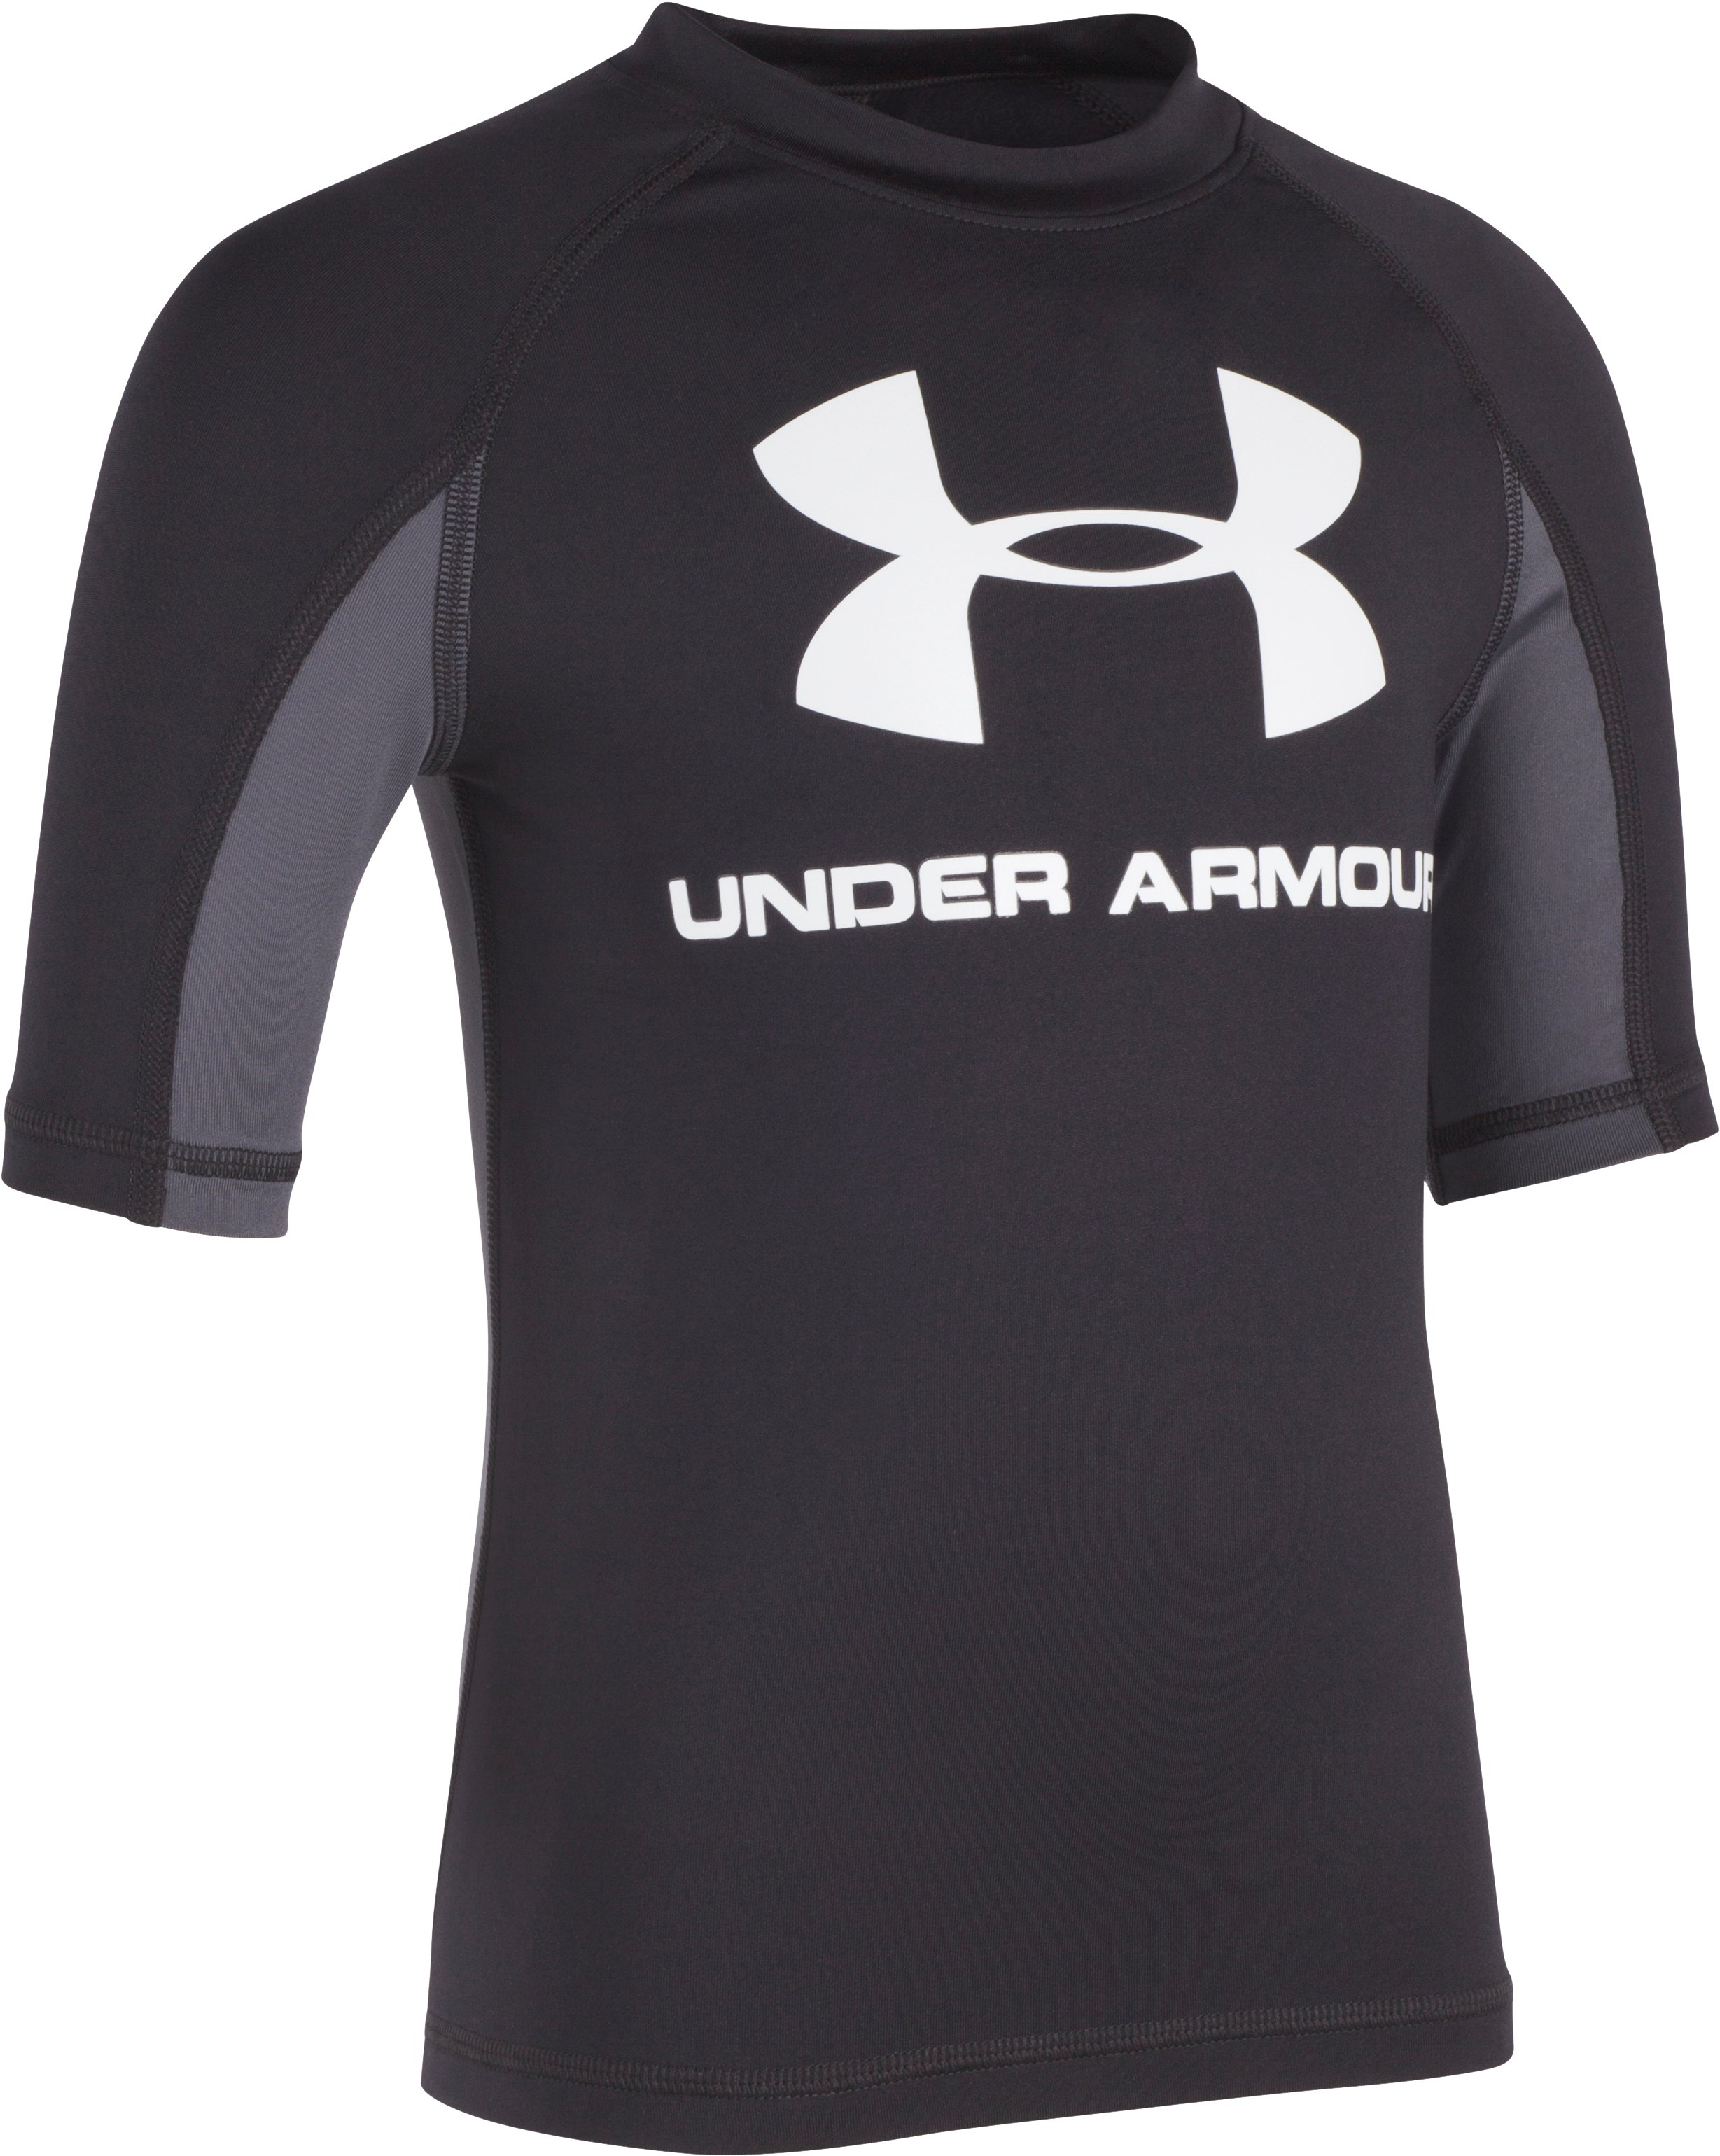 Boys' UA Compression Short Sleeve Rashguard Shirt 3 Colors $26.99 - $28.00